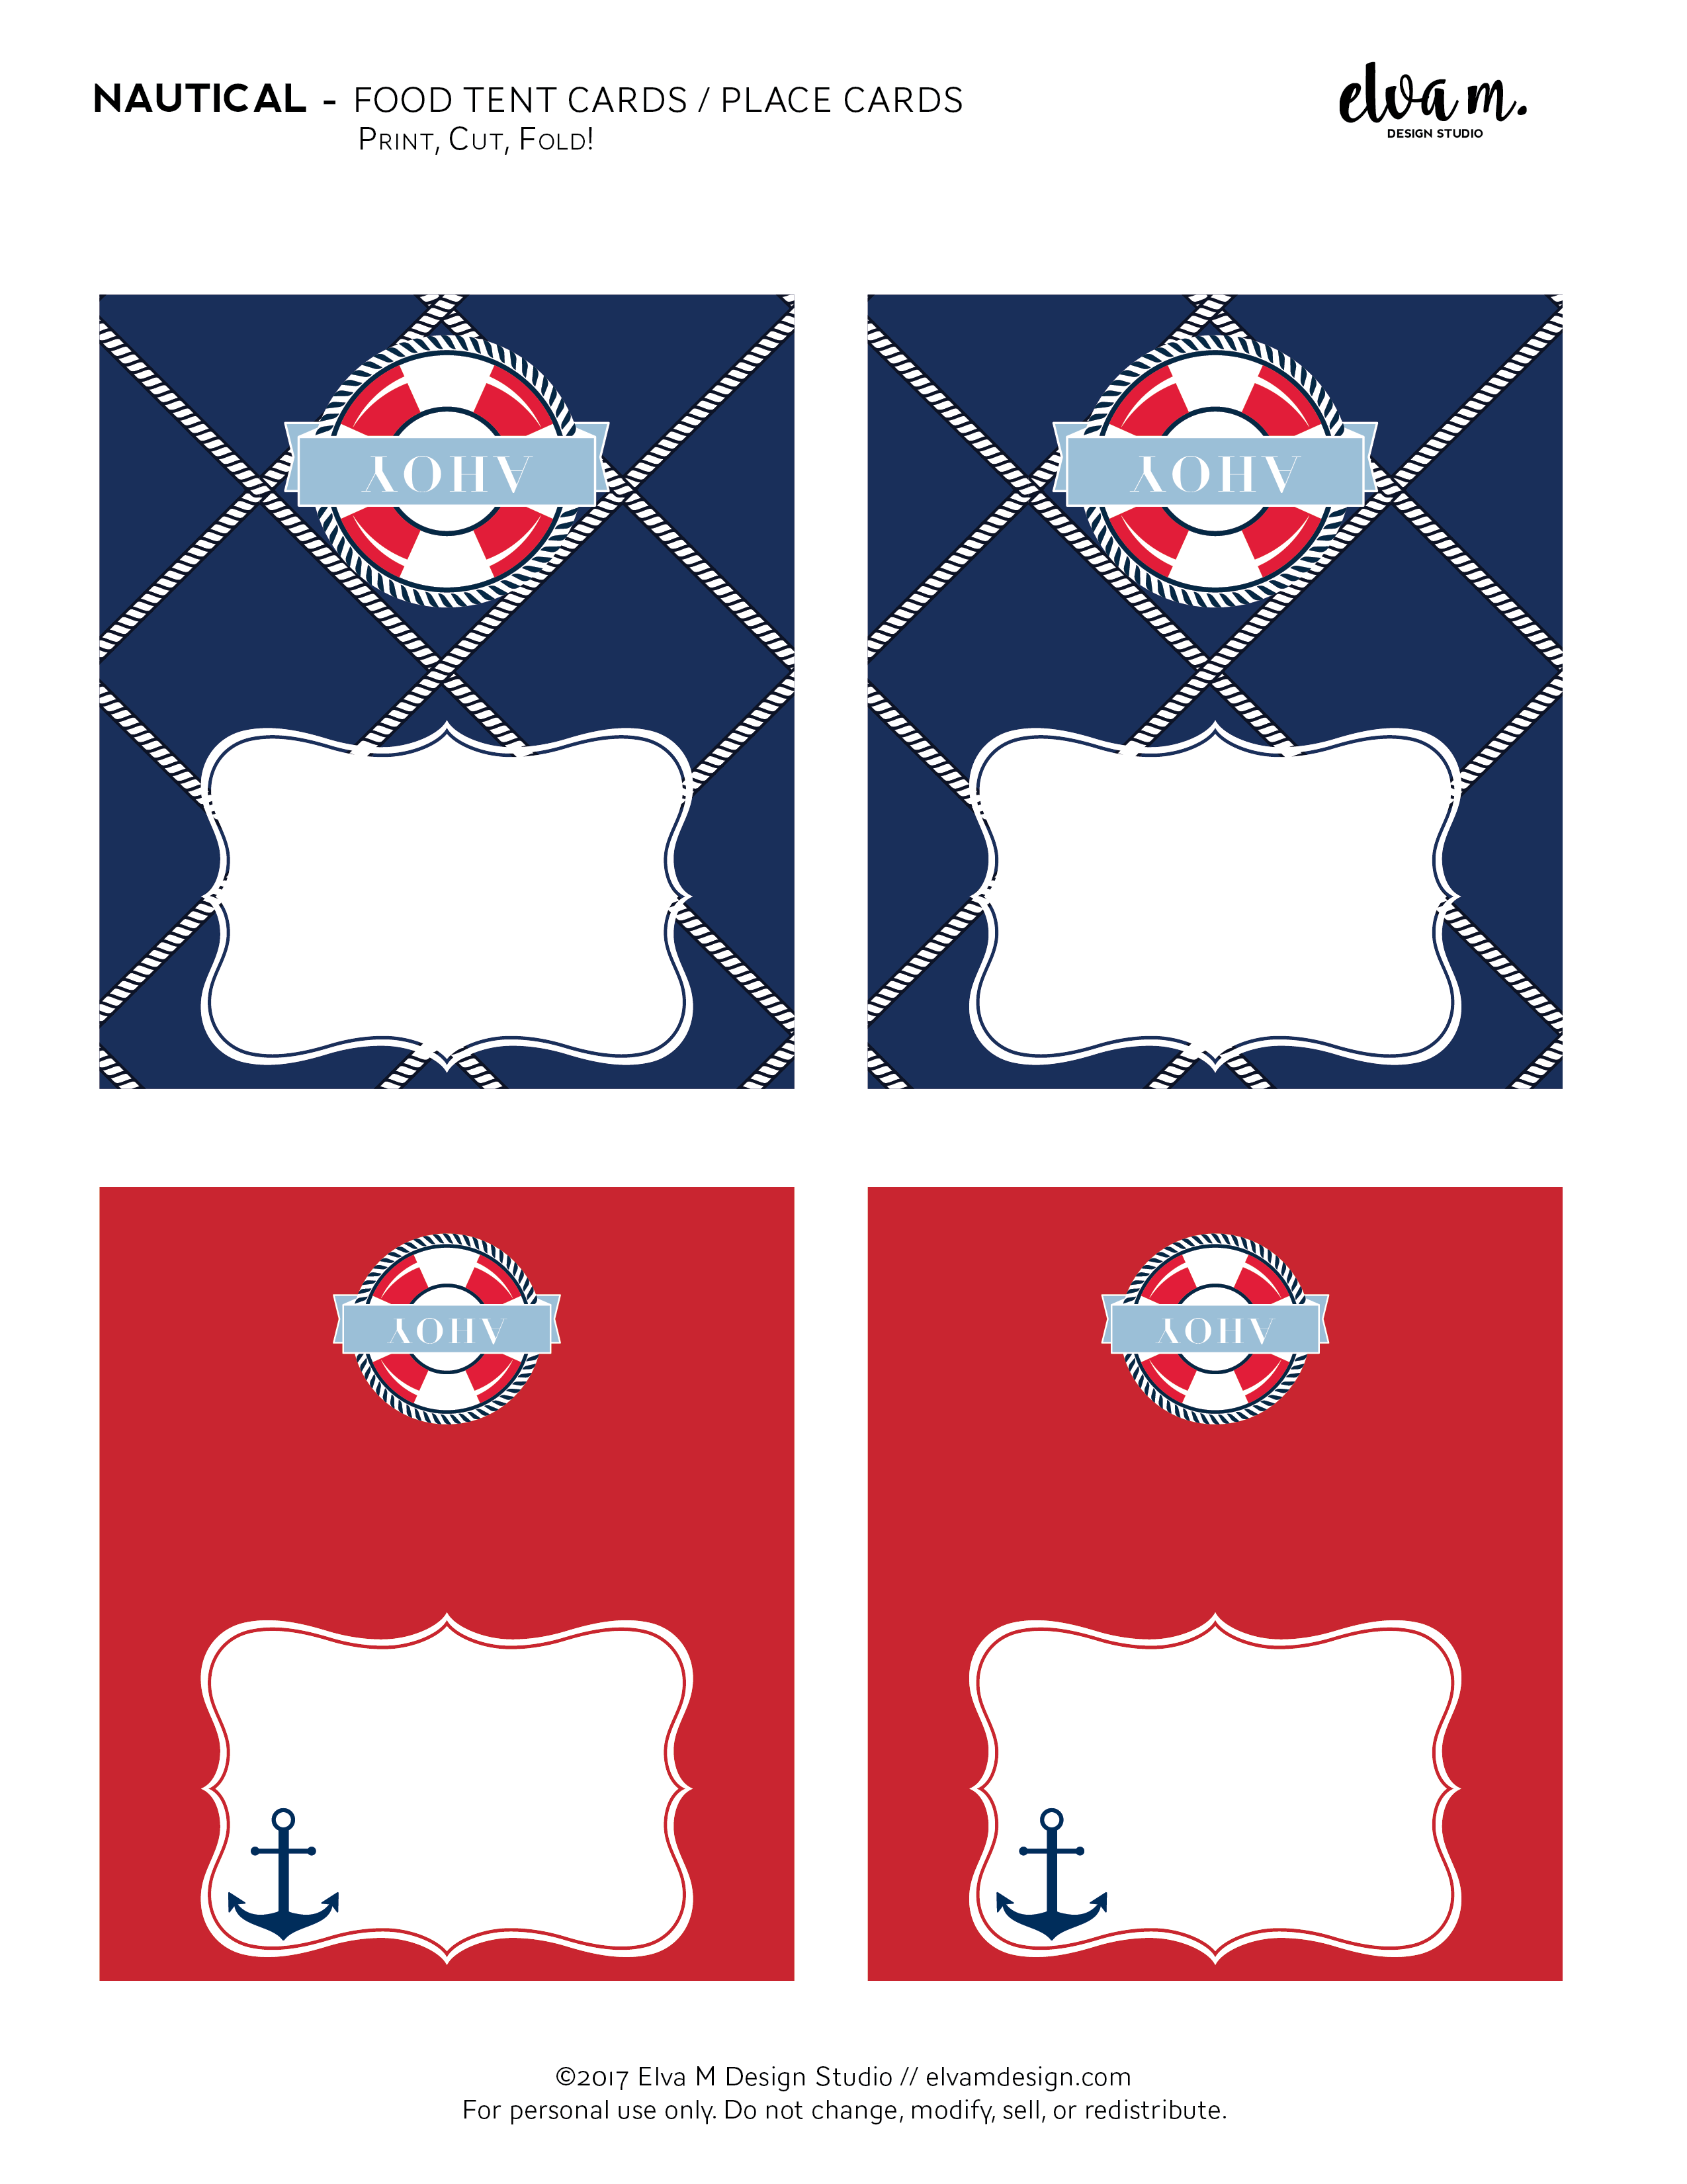 Food Tent Cards Place Free Nautical Birthday And Baby Shower